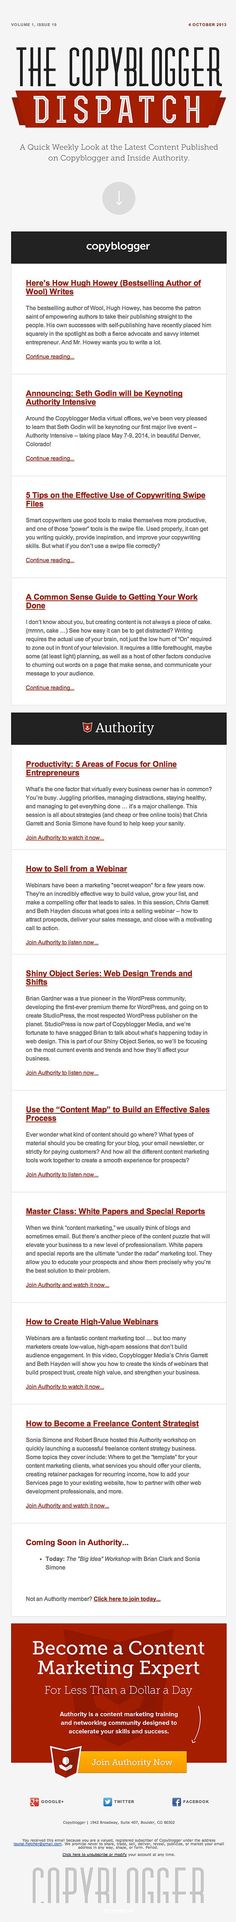 Weekly Newsletter Email Design from CopyBlogger